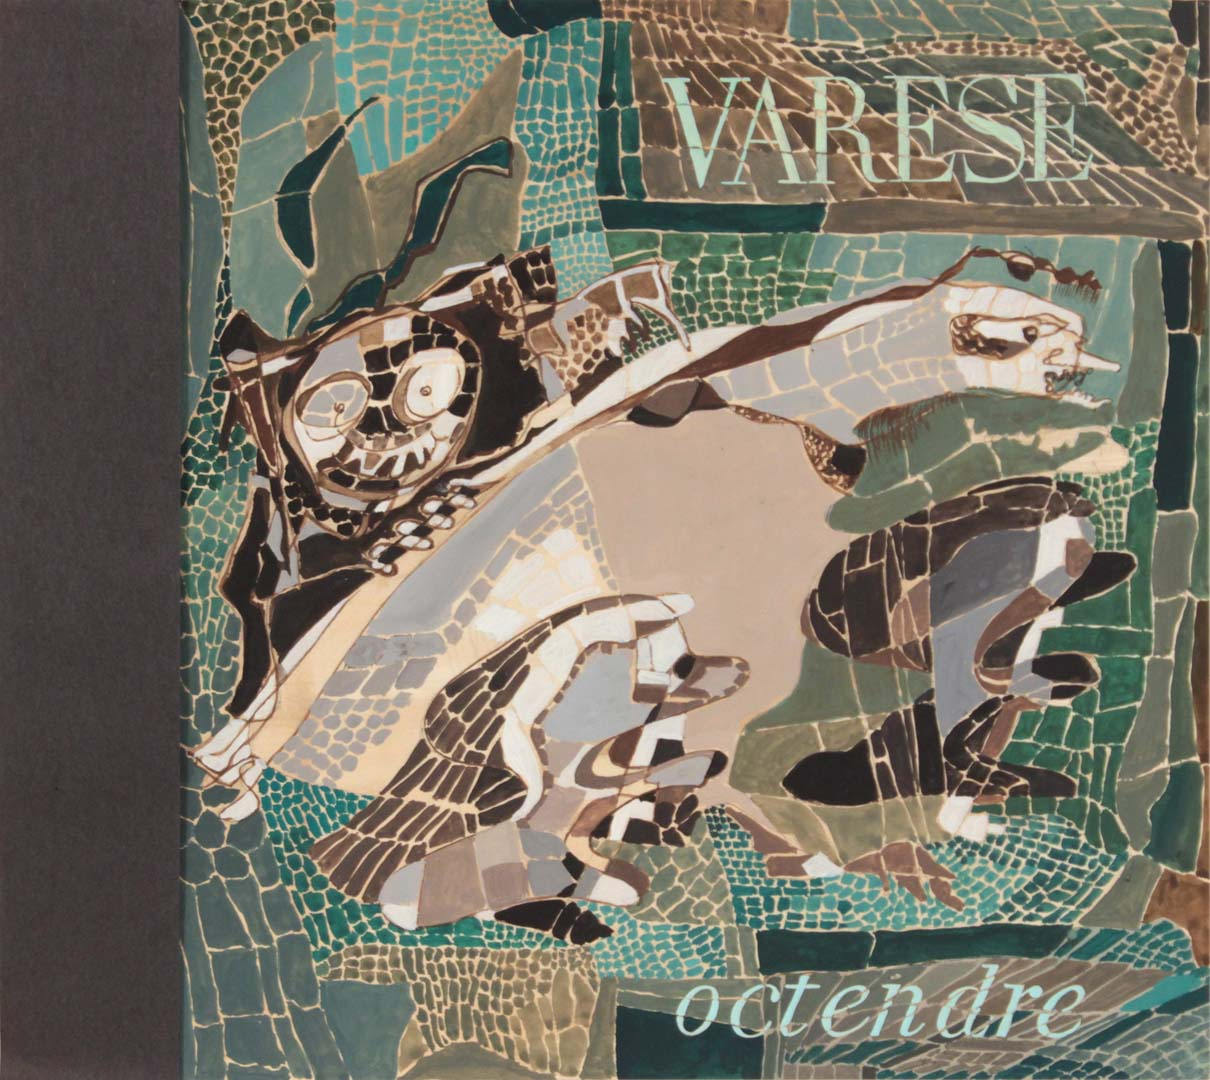 "1949 Varese Octendre (or Themes from Alban Berg) Tempera on Paper 12.50"" x 14"""